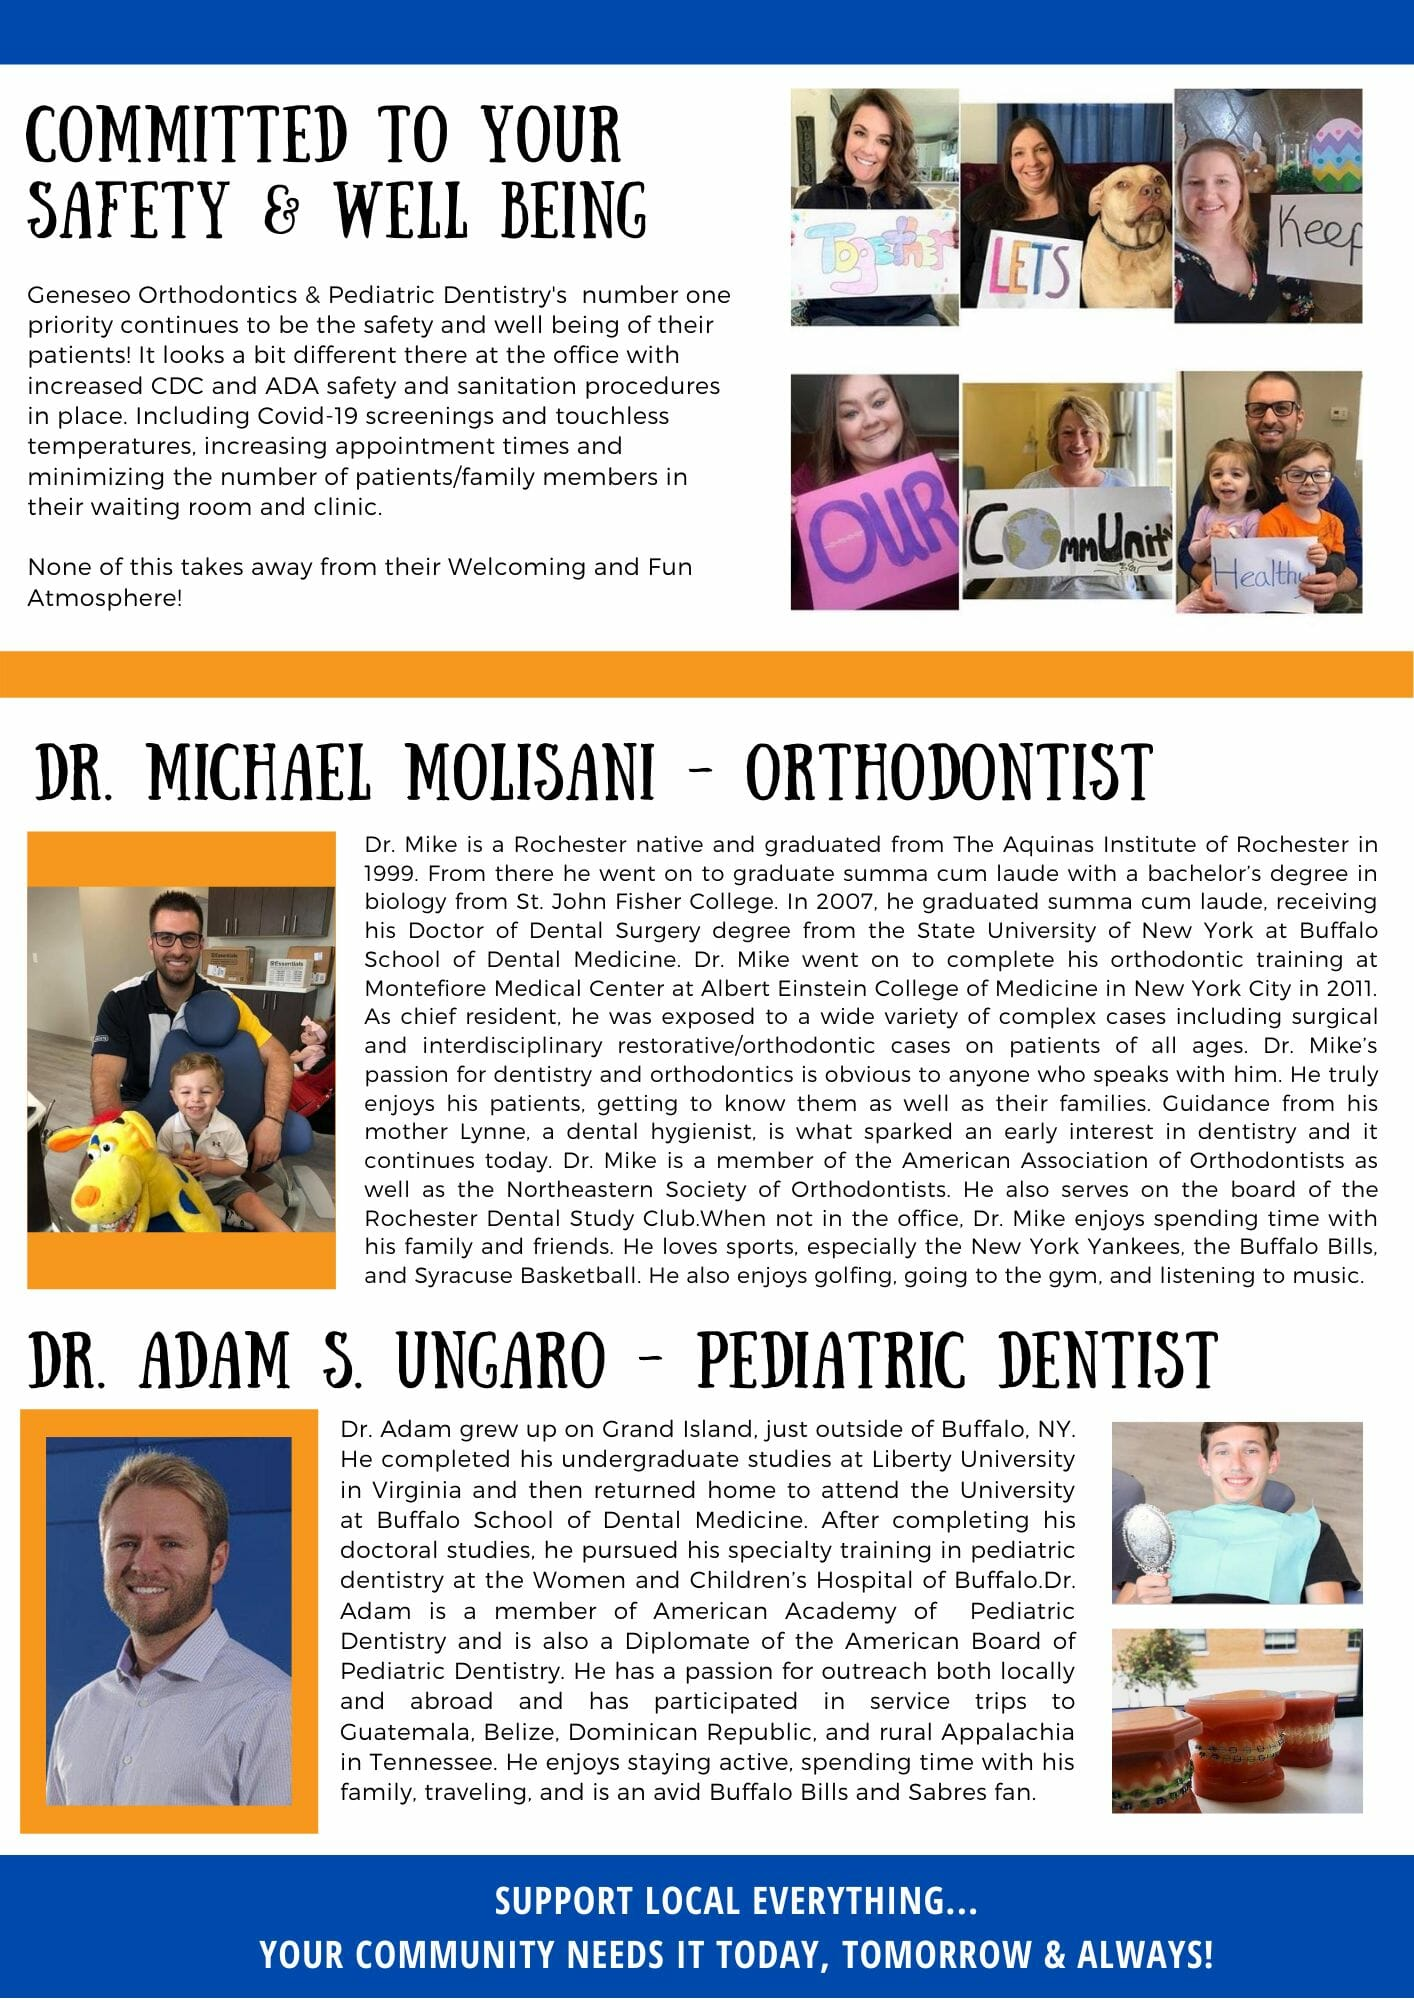 Geneseo-Ortho-page-2